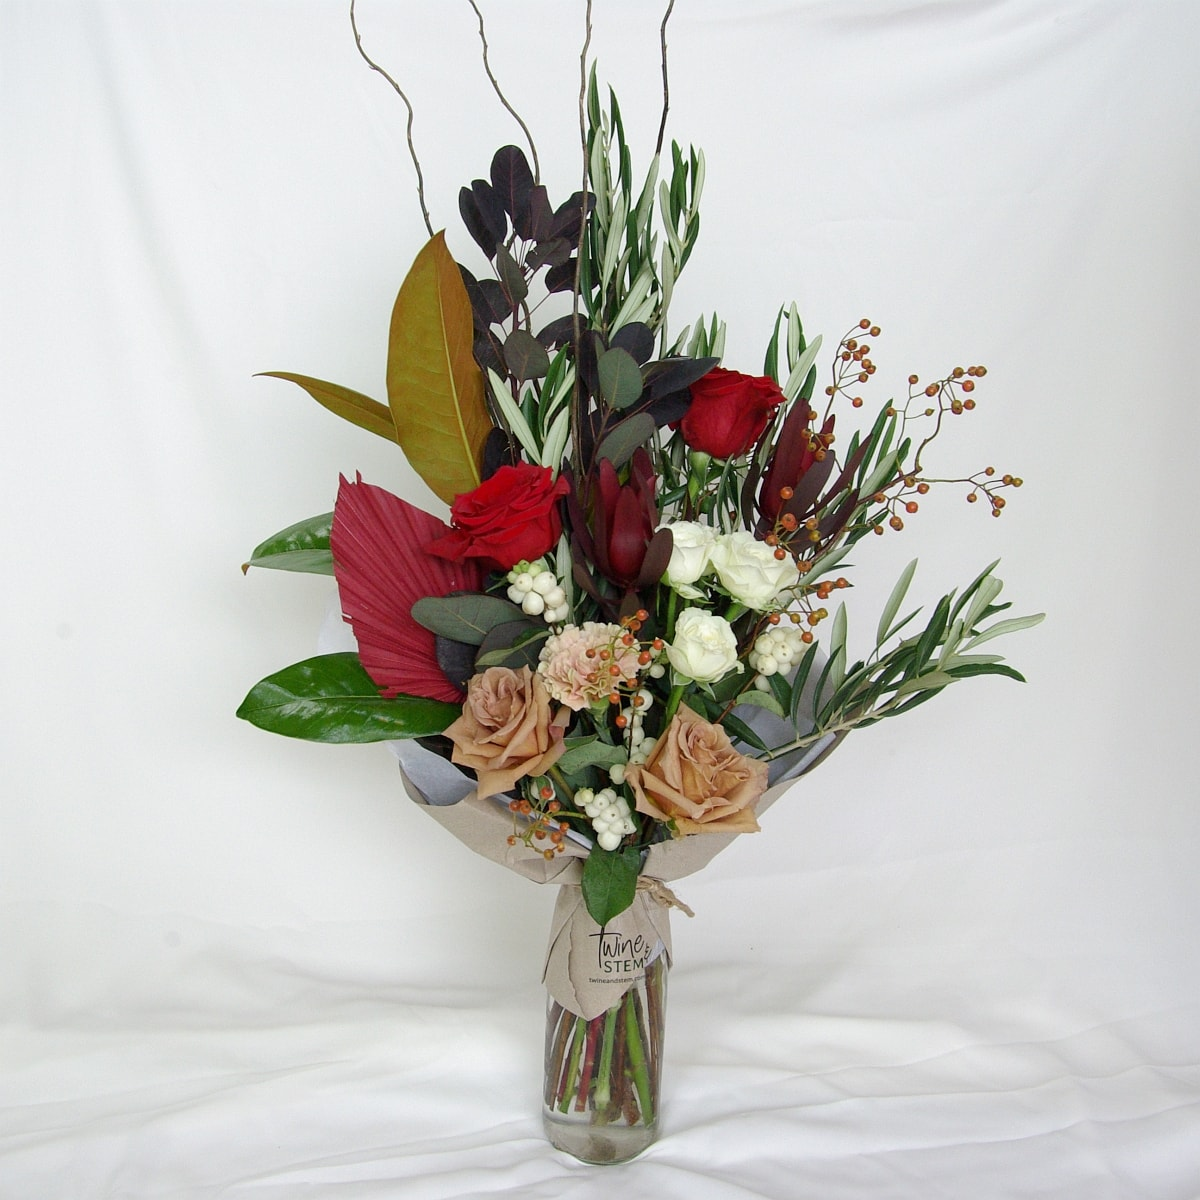 twine-and-stem-valentines-day-bouquet-2021